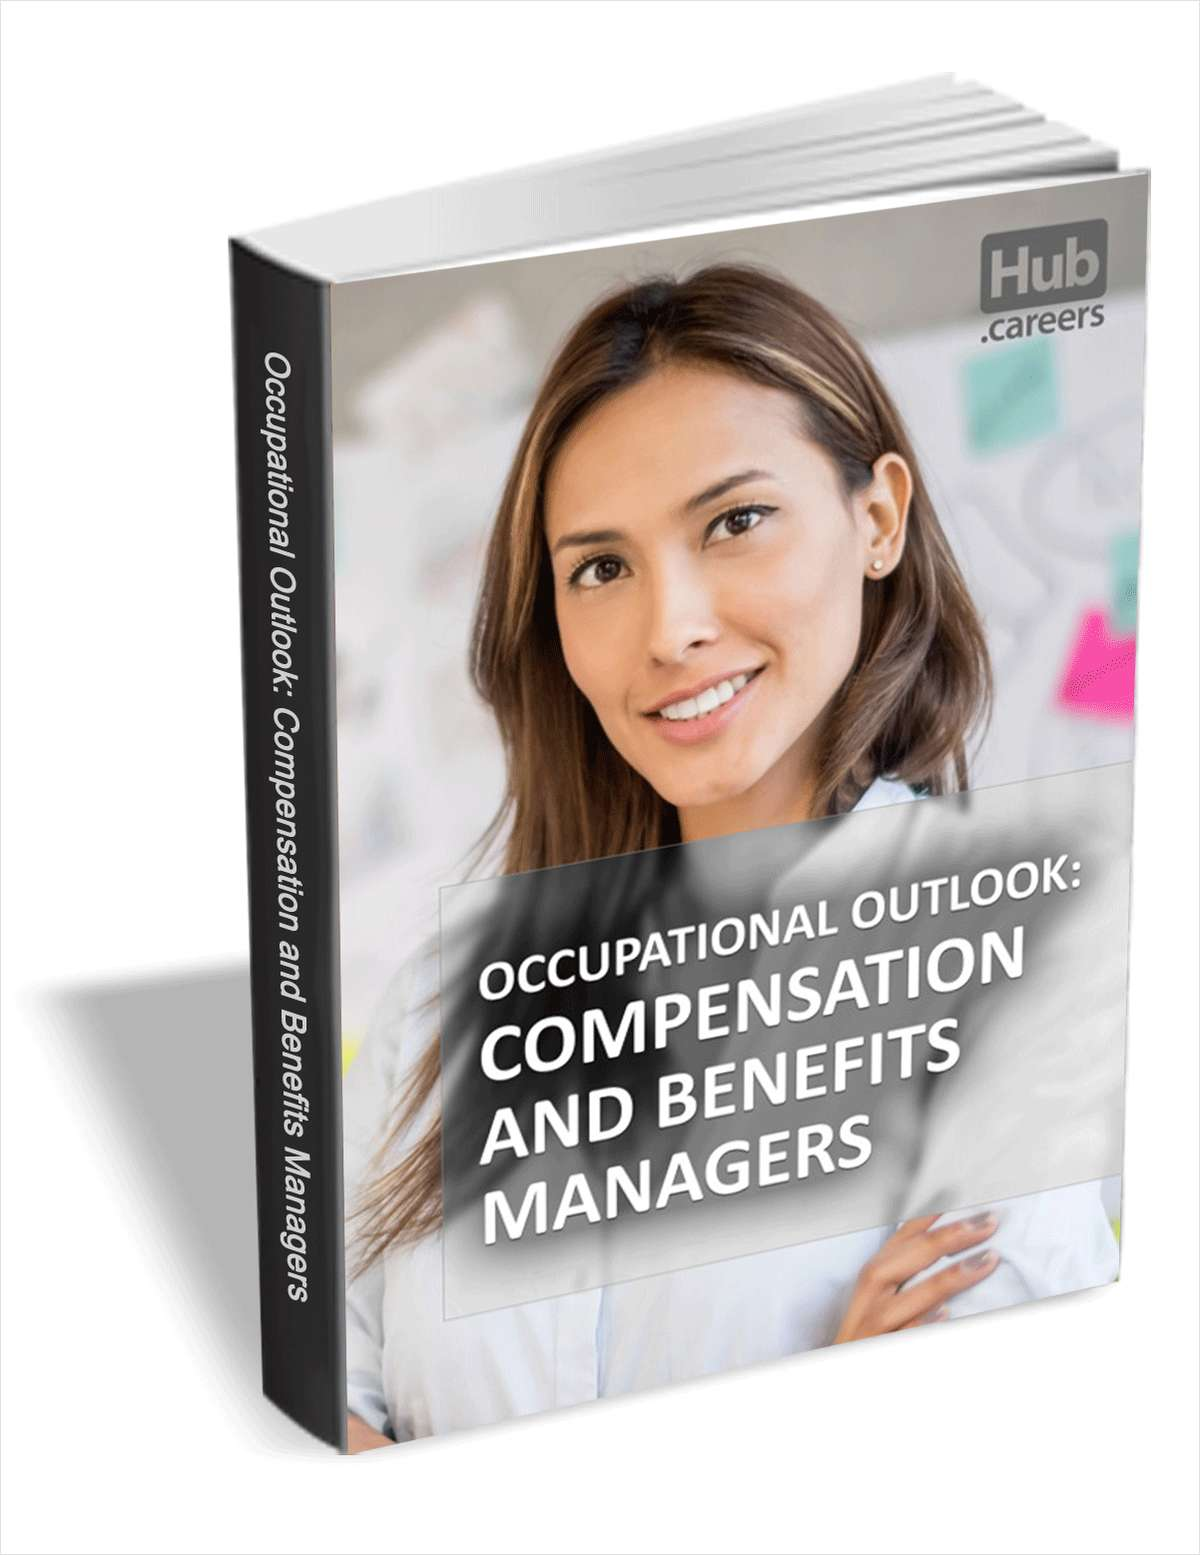 Compensation and Benefits Managers - Occupational Outlook